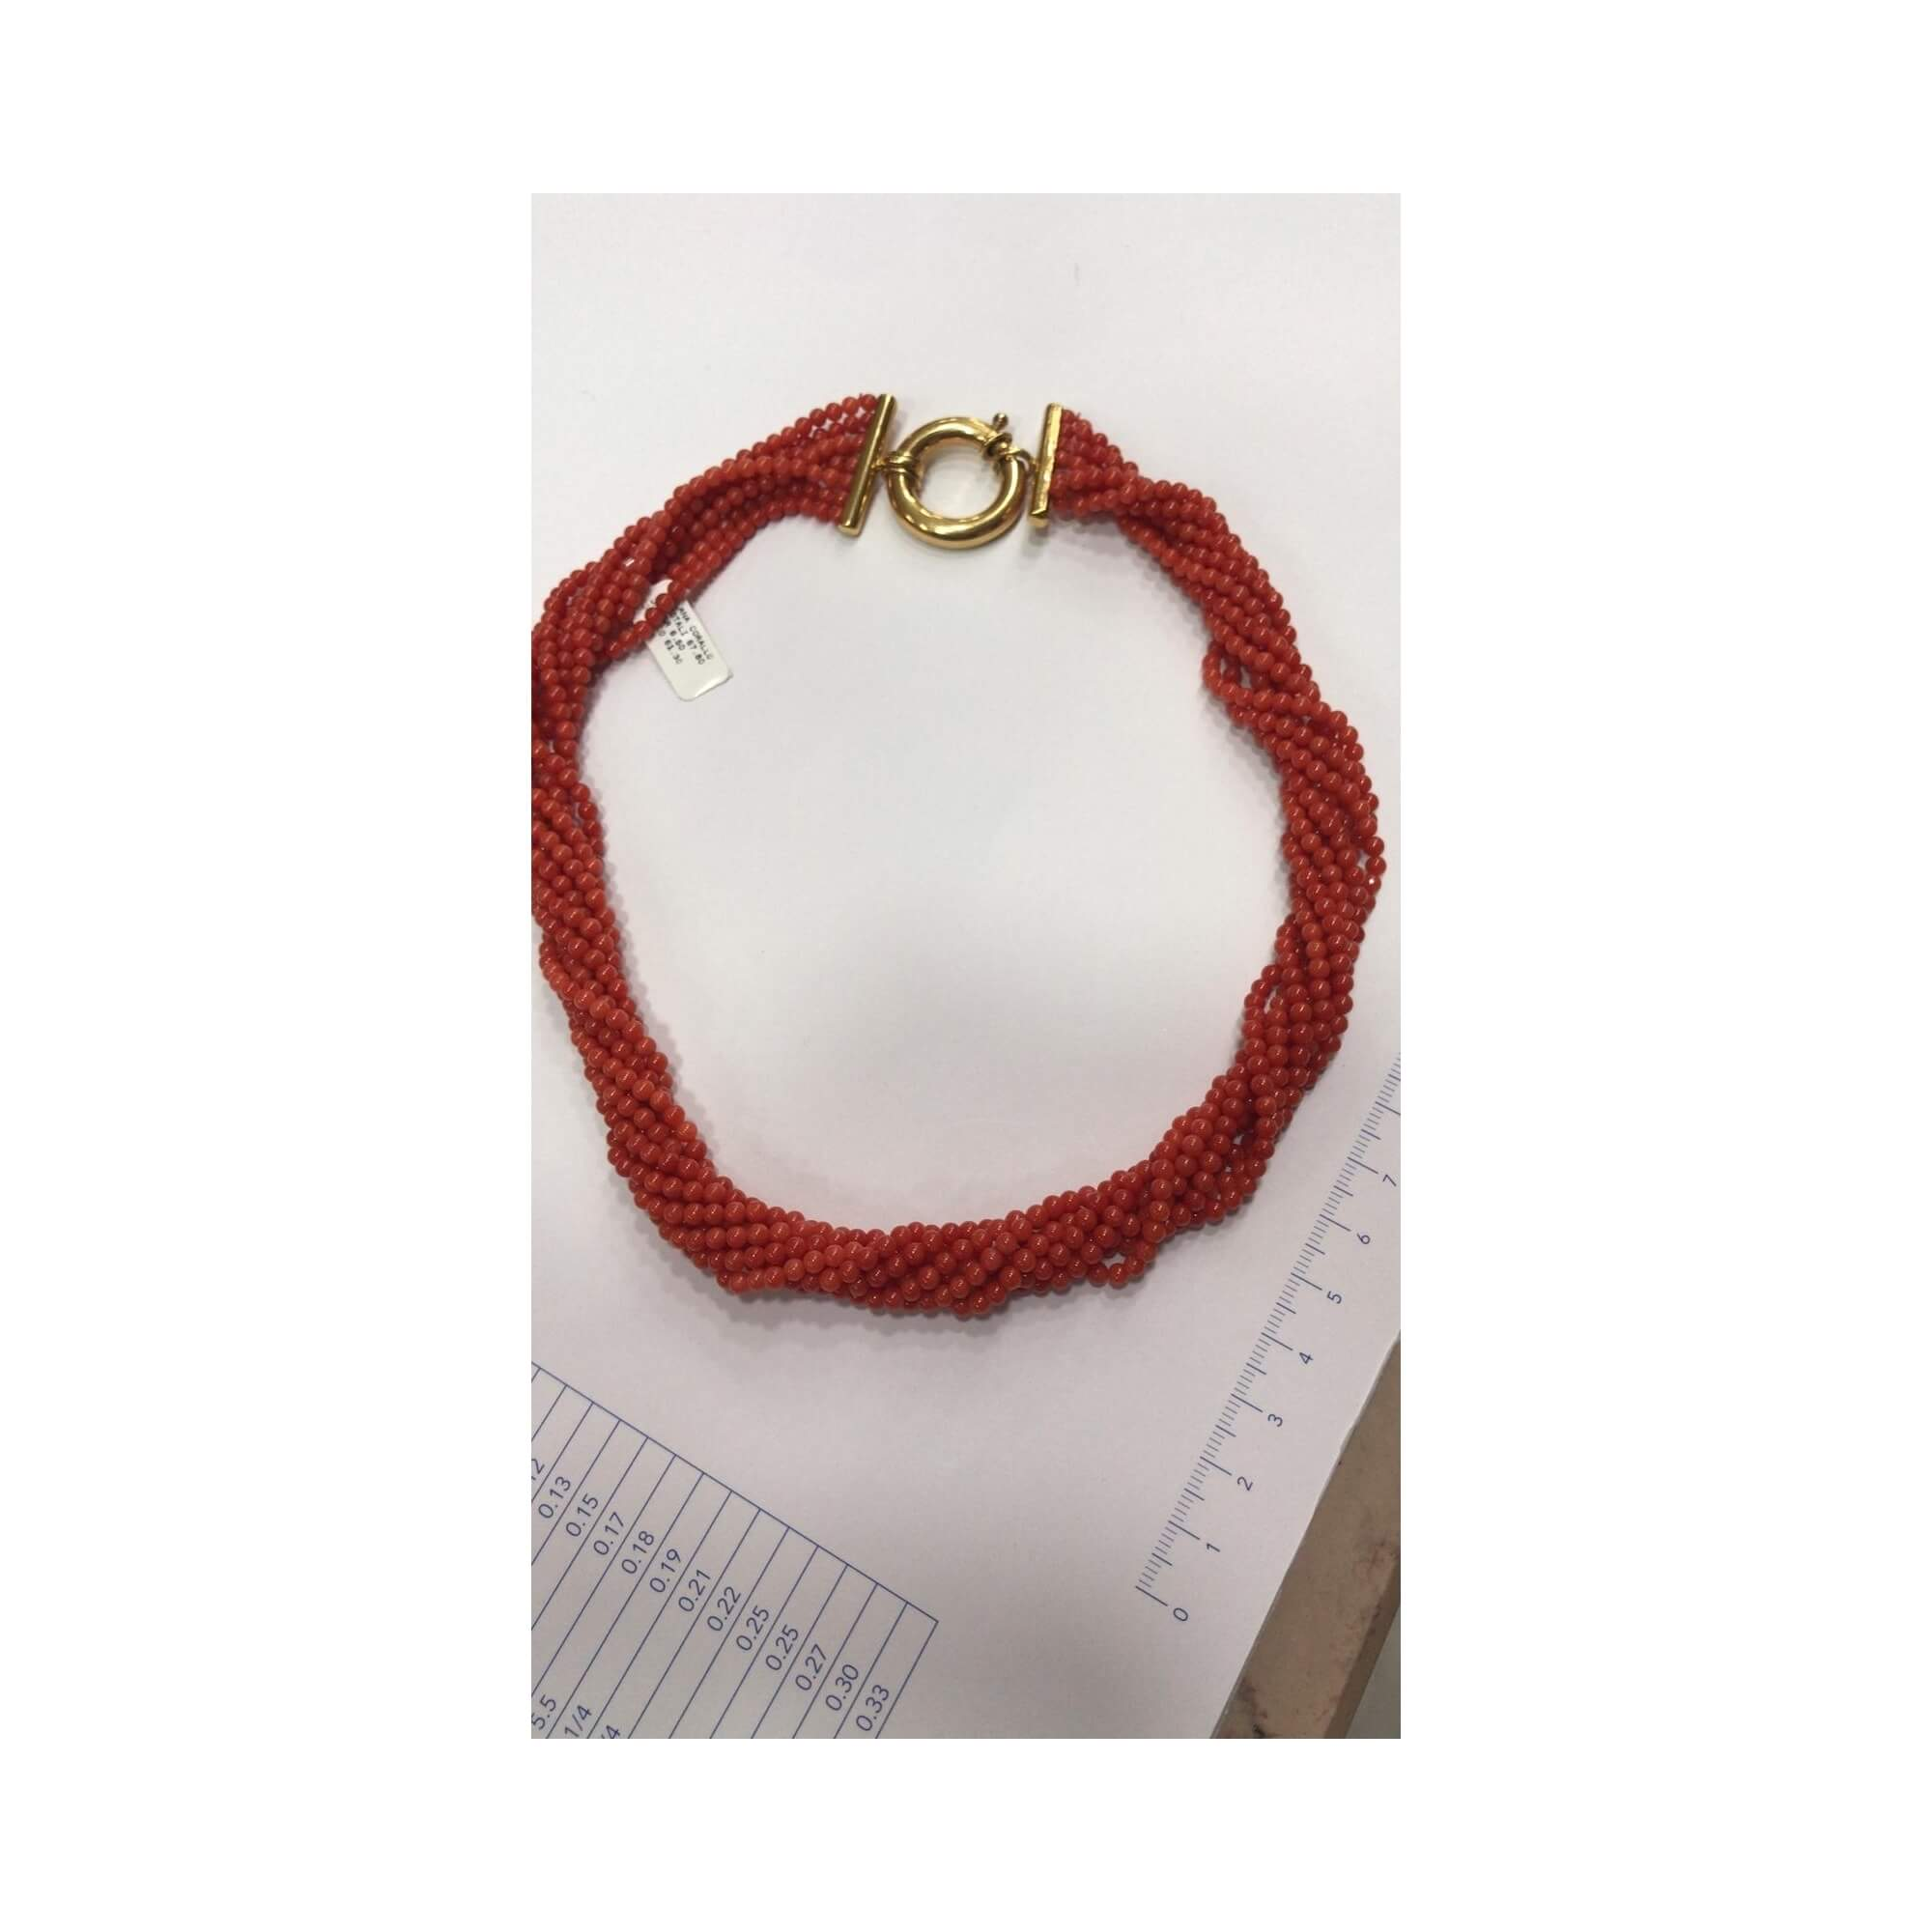 Neckalces made with coral beads and gold clasp